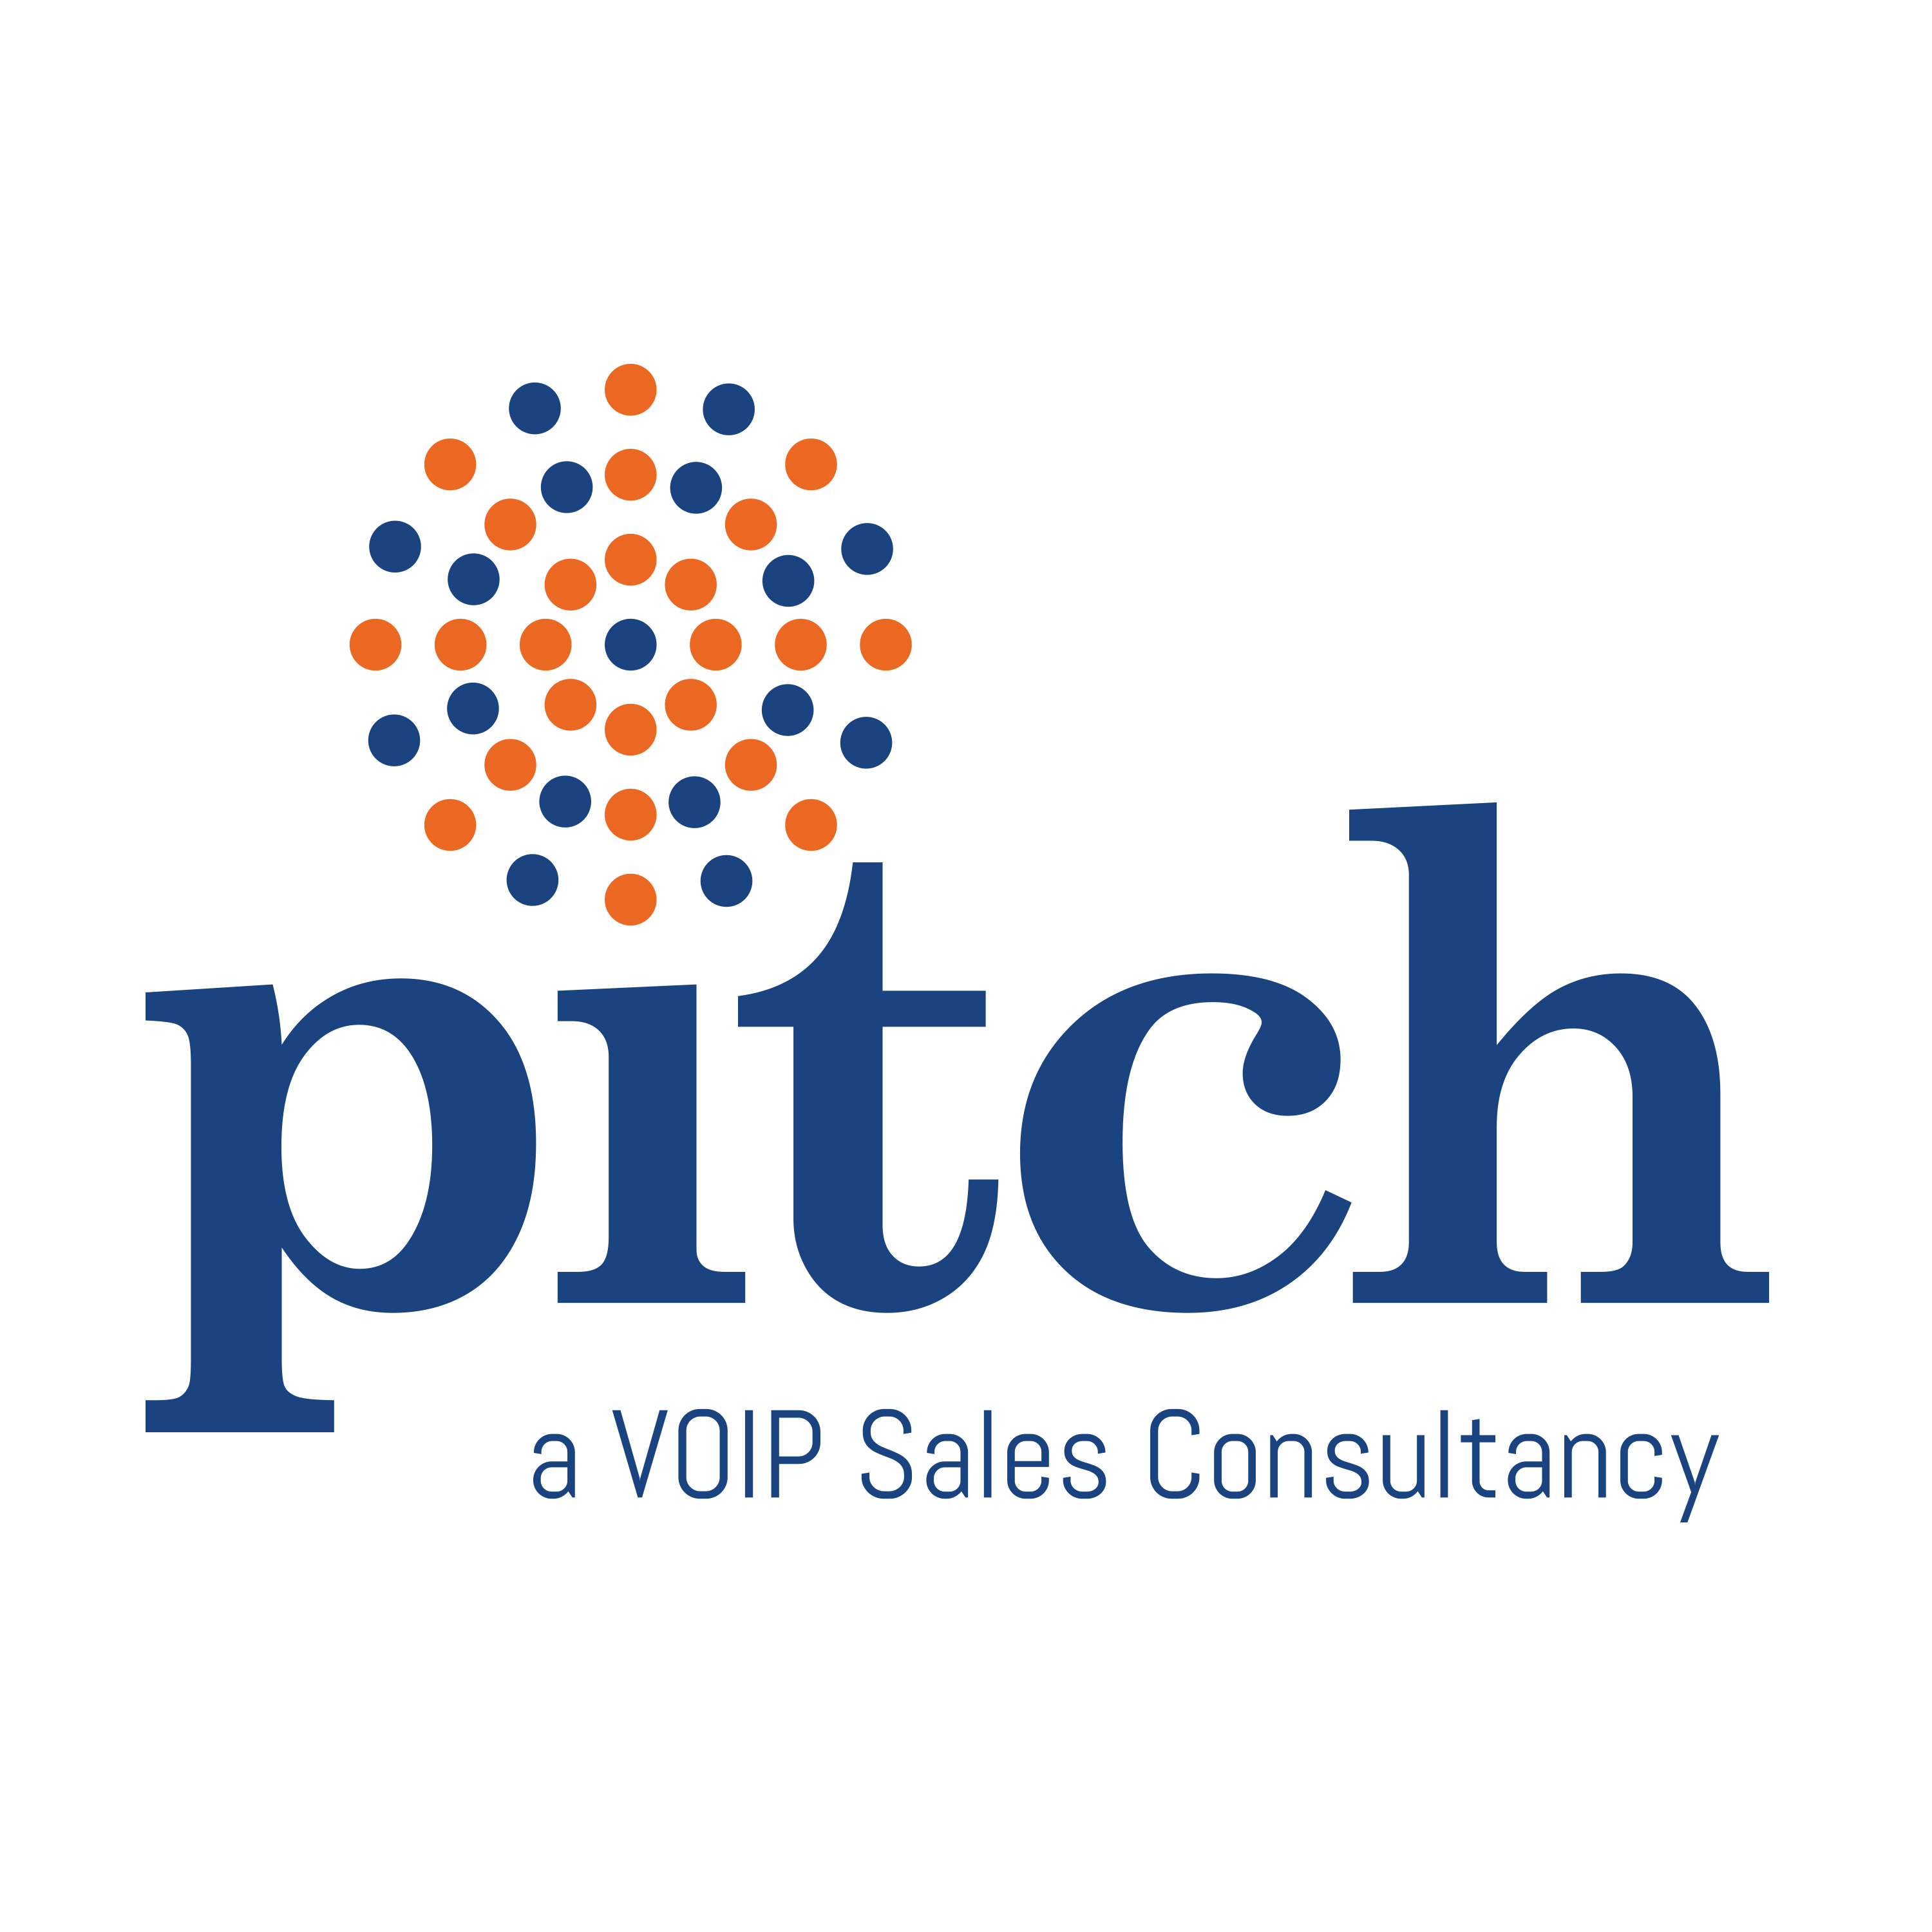 Pitch, A VoIP Consultancy